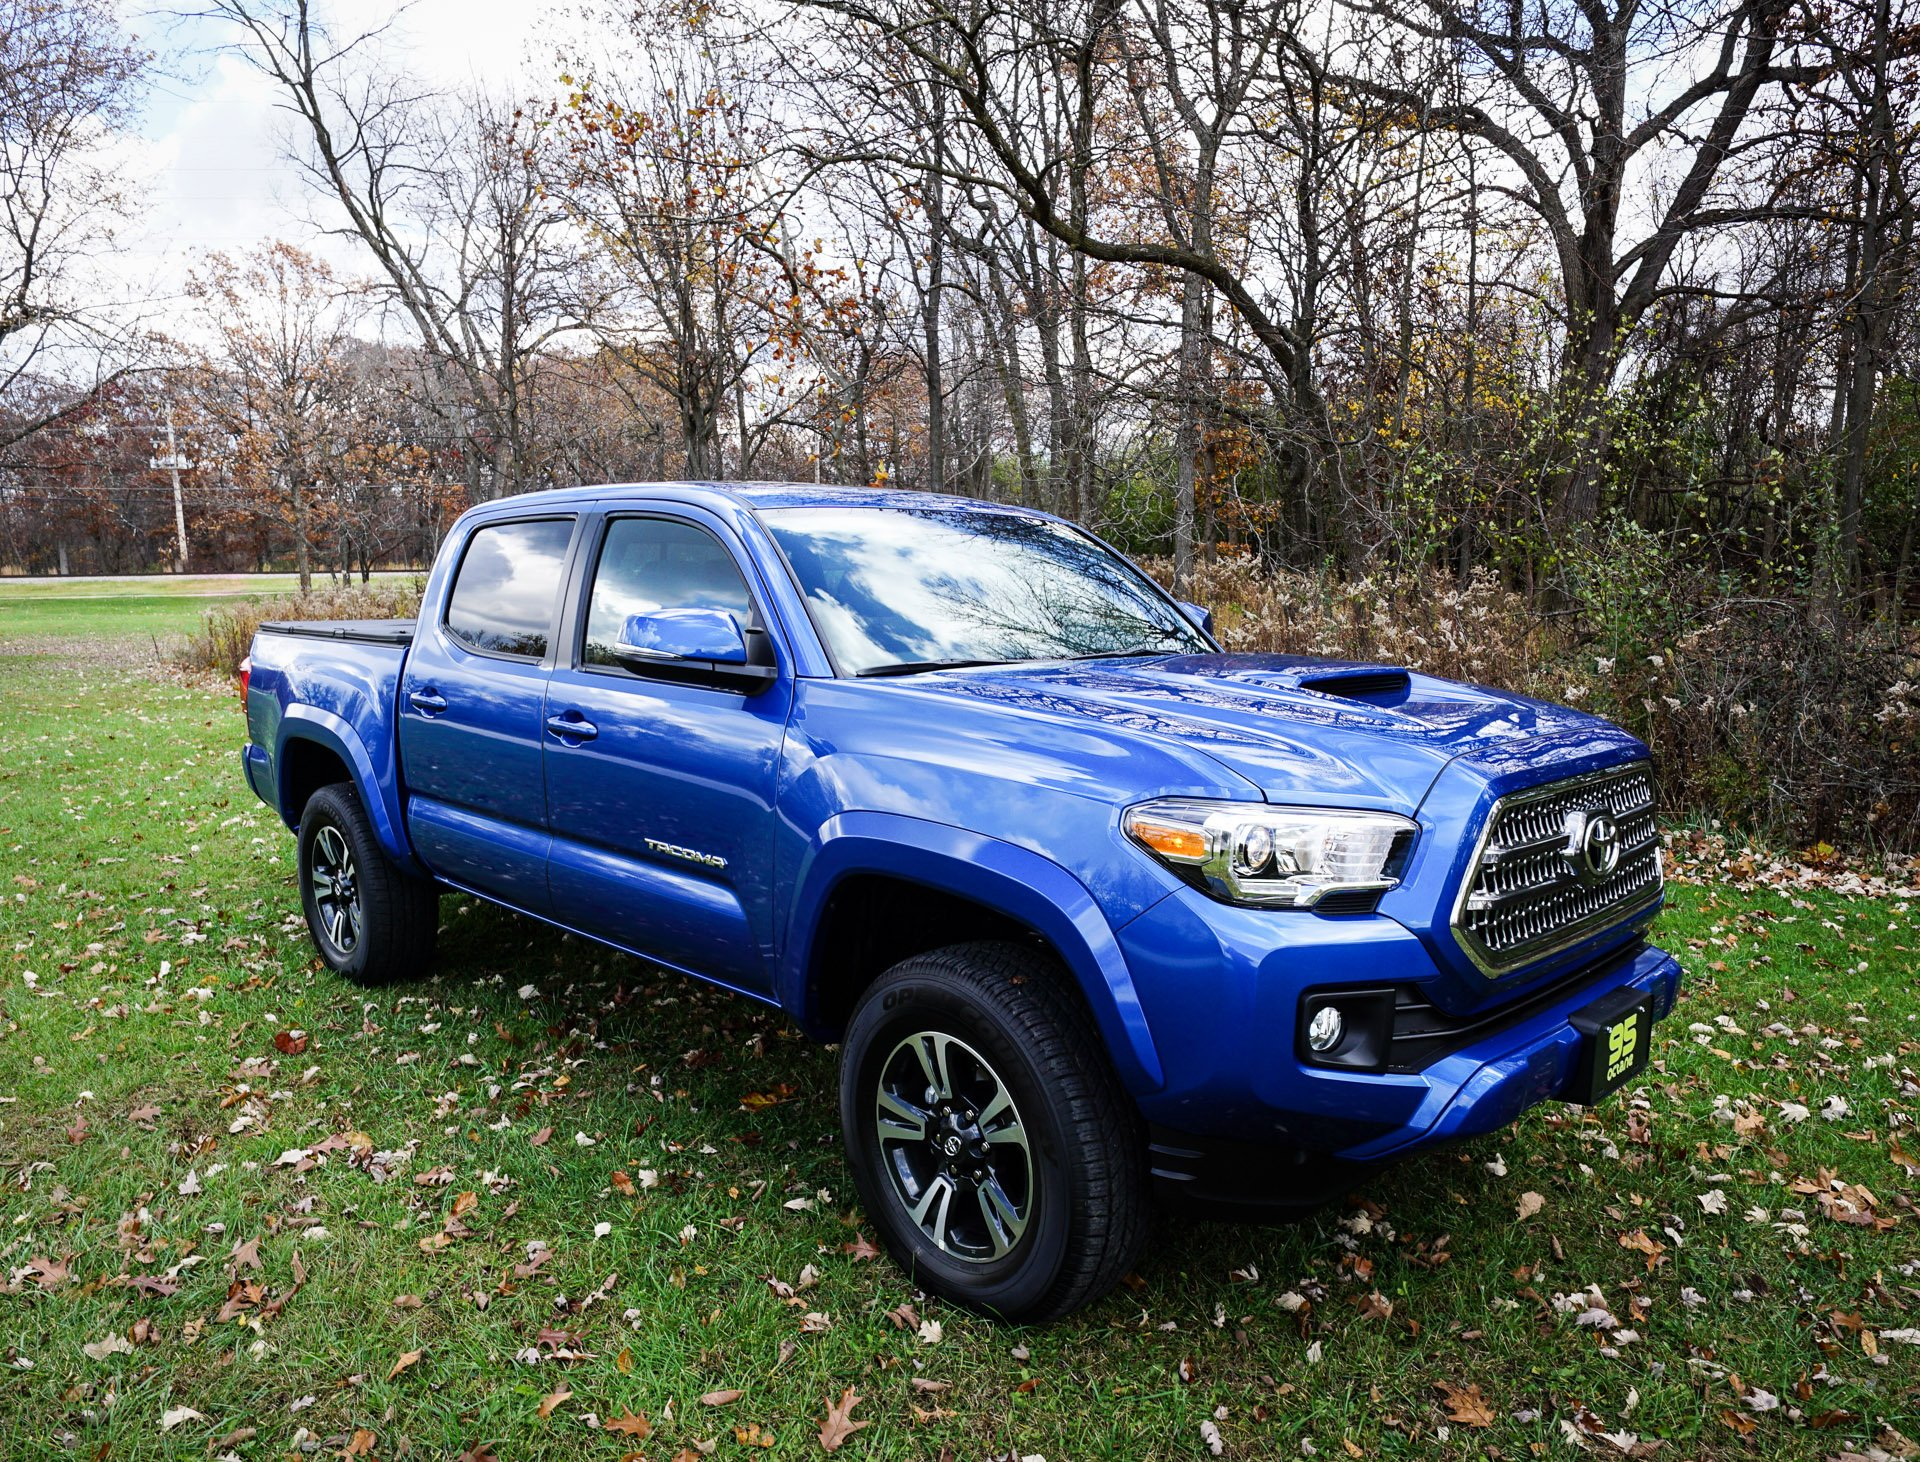 Daily Driving the 2016 Toyota Tacoma TRD Sport 4x4 - 95 Octane